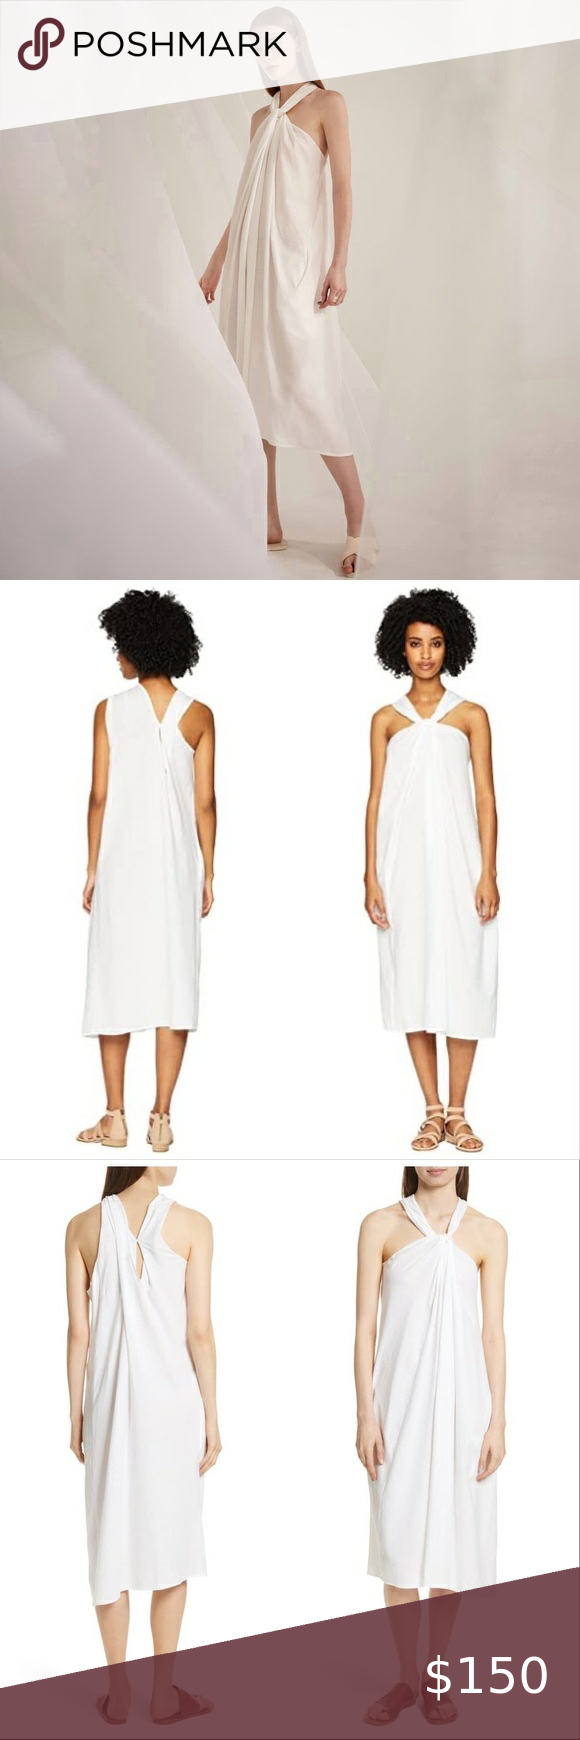 Vince White Cotton Twist Front Halter Dress Small Vince White Cotton Twist Front Halter Dress Cotton Knit Maxi Dress Maxi Dress Cotton Maxi Dress With Sleeves [ 1740 x 580 Pixel ]